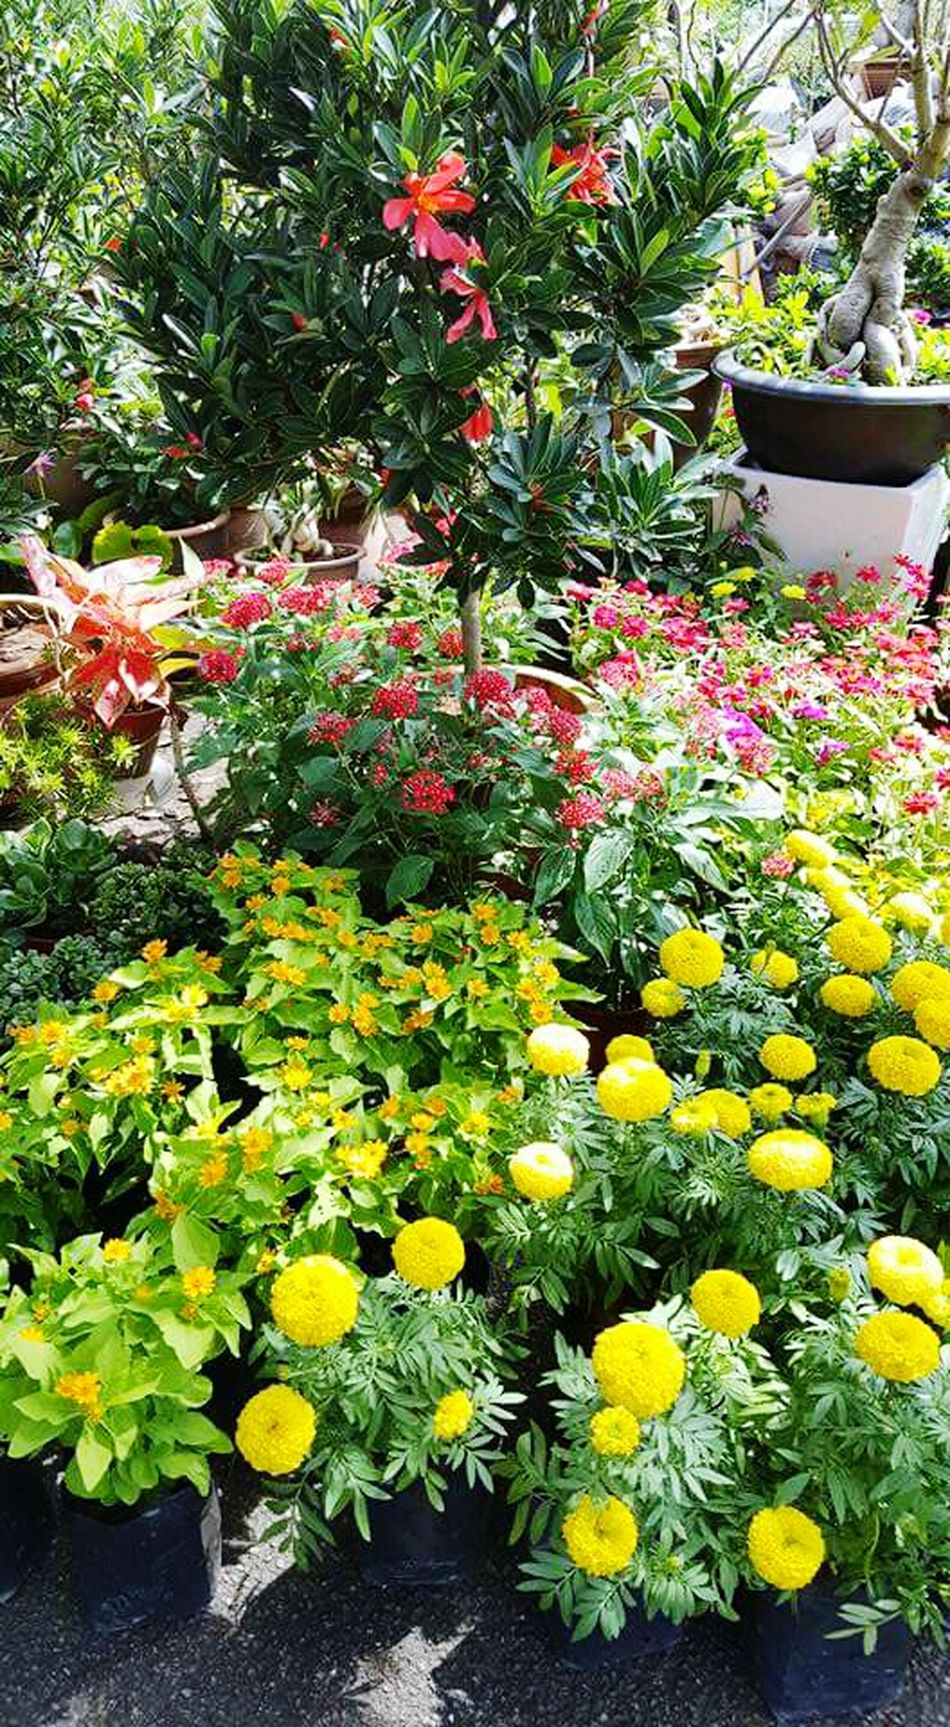 Growth Flower Nature Plant Freshness Beauty In Nature Outdoors Green Color TreeYellow Day Yellow Color Pink Color Green Color Leaves🌿 Leaves And Flowers RedFlower Yellowflower Garden Flowers My Garden @my Home